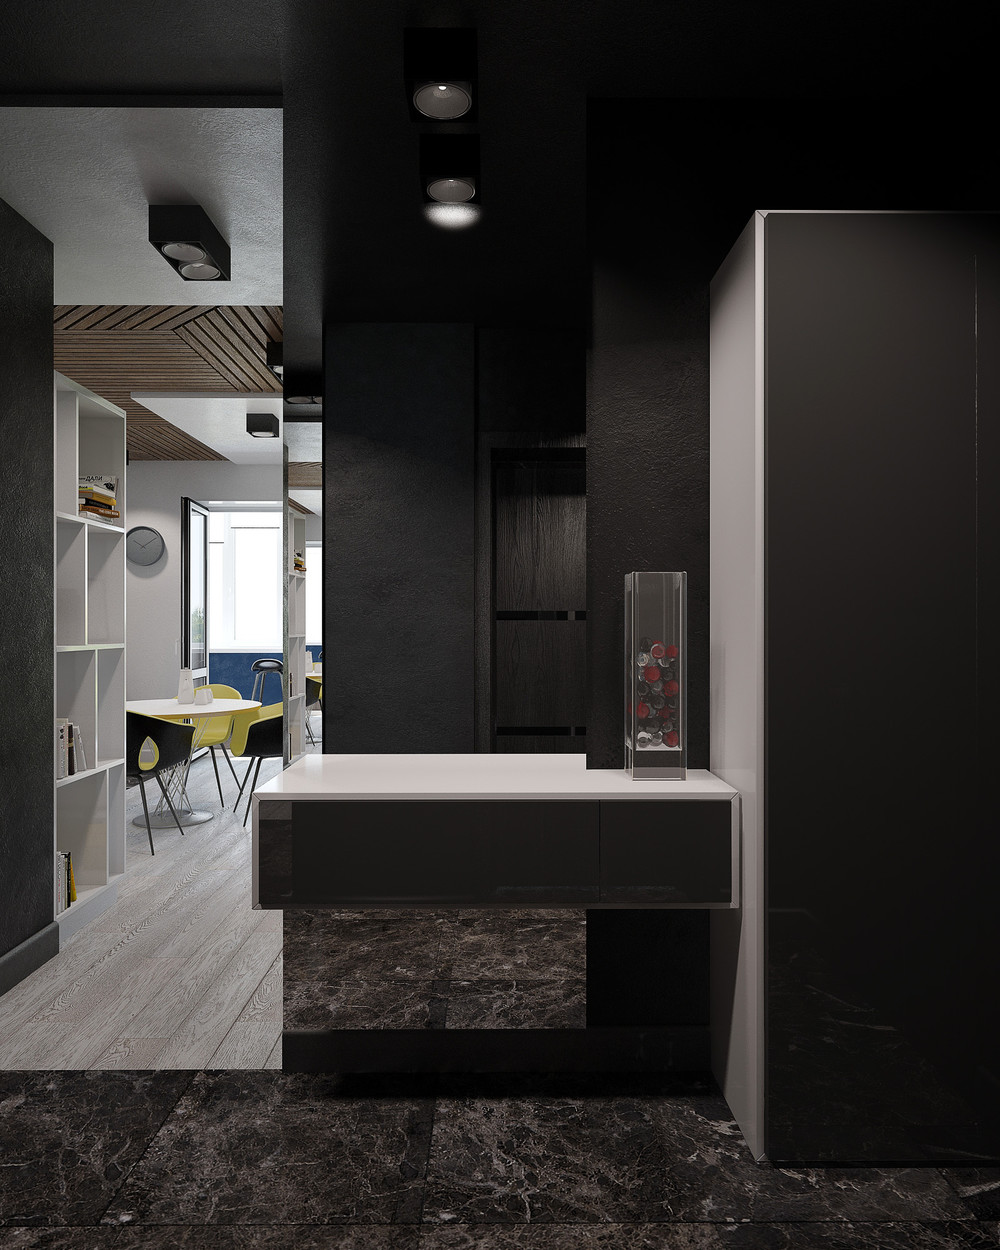 Black Marble Floors Ornate Entrance - 3 small studio apartments that exude luxurious space